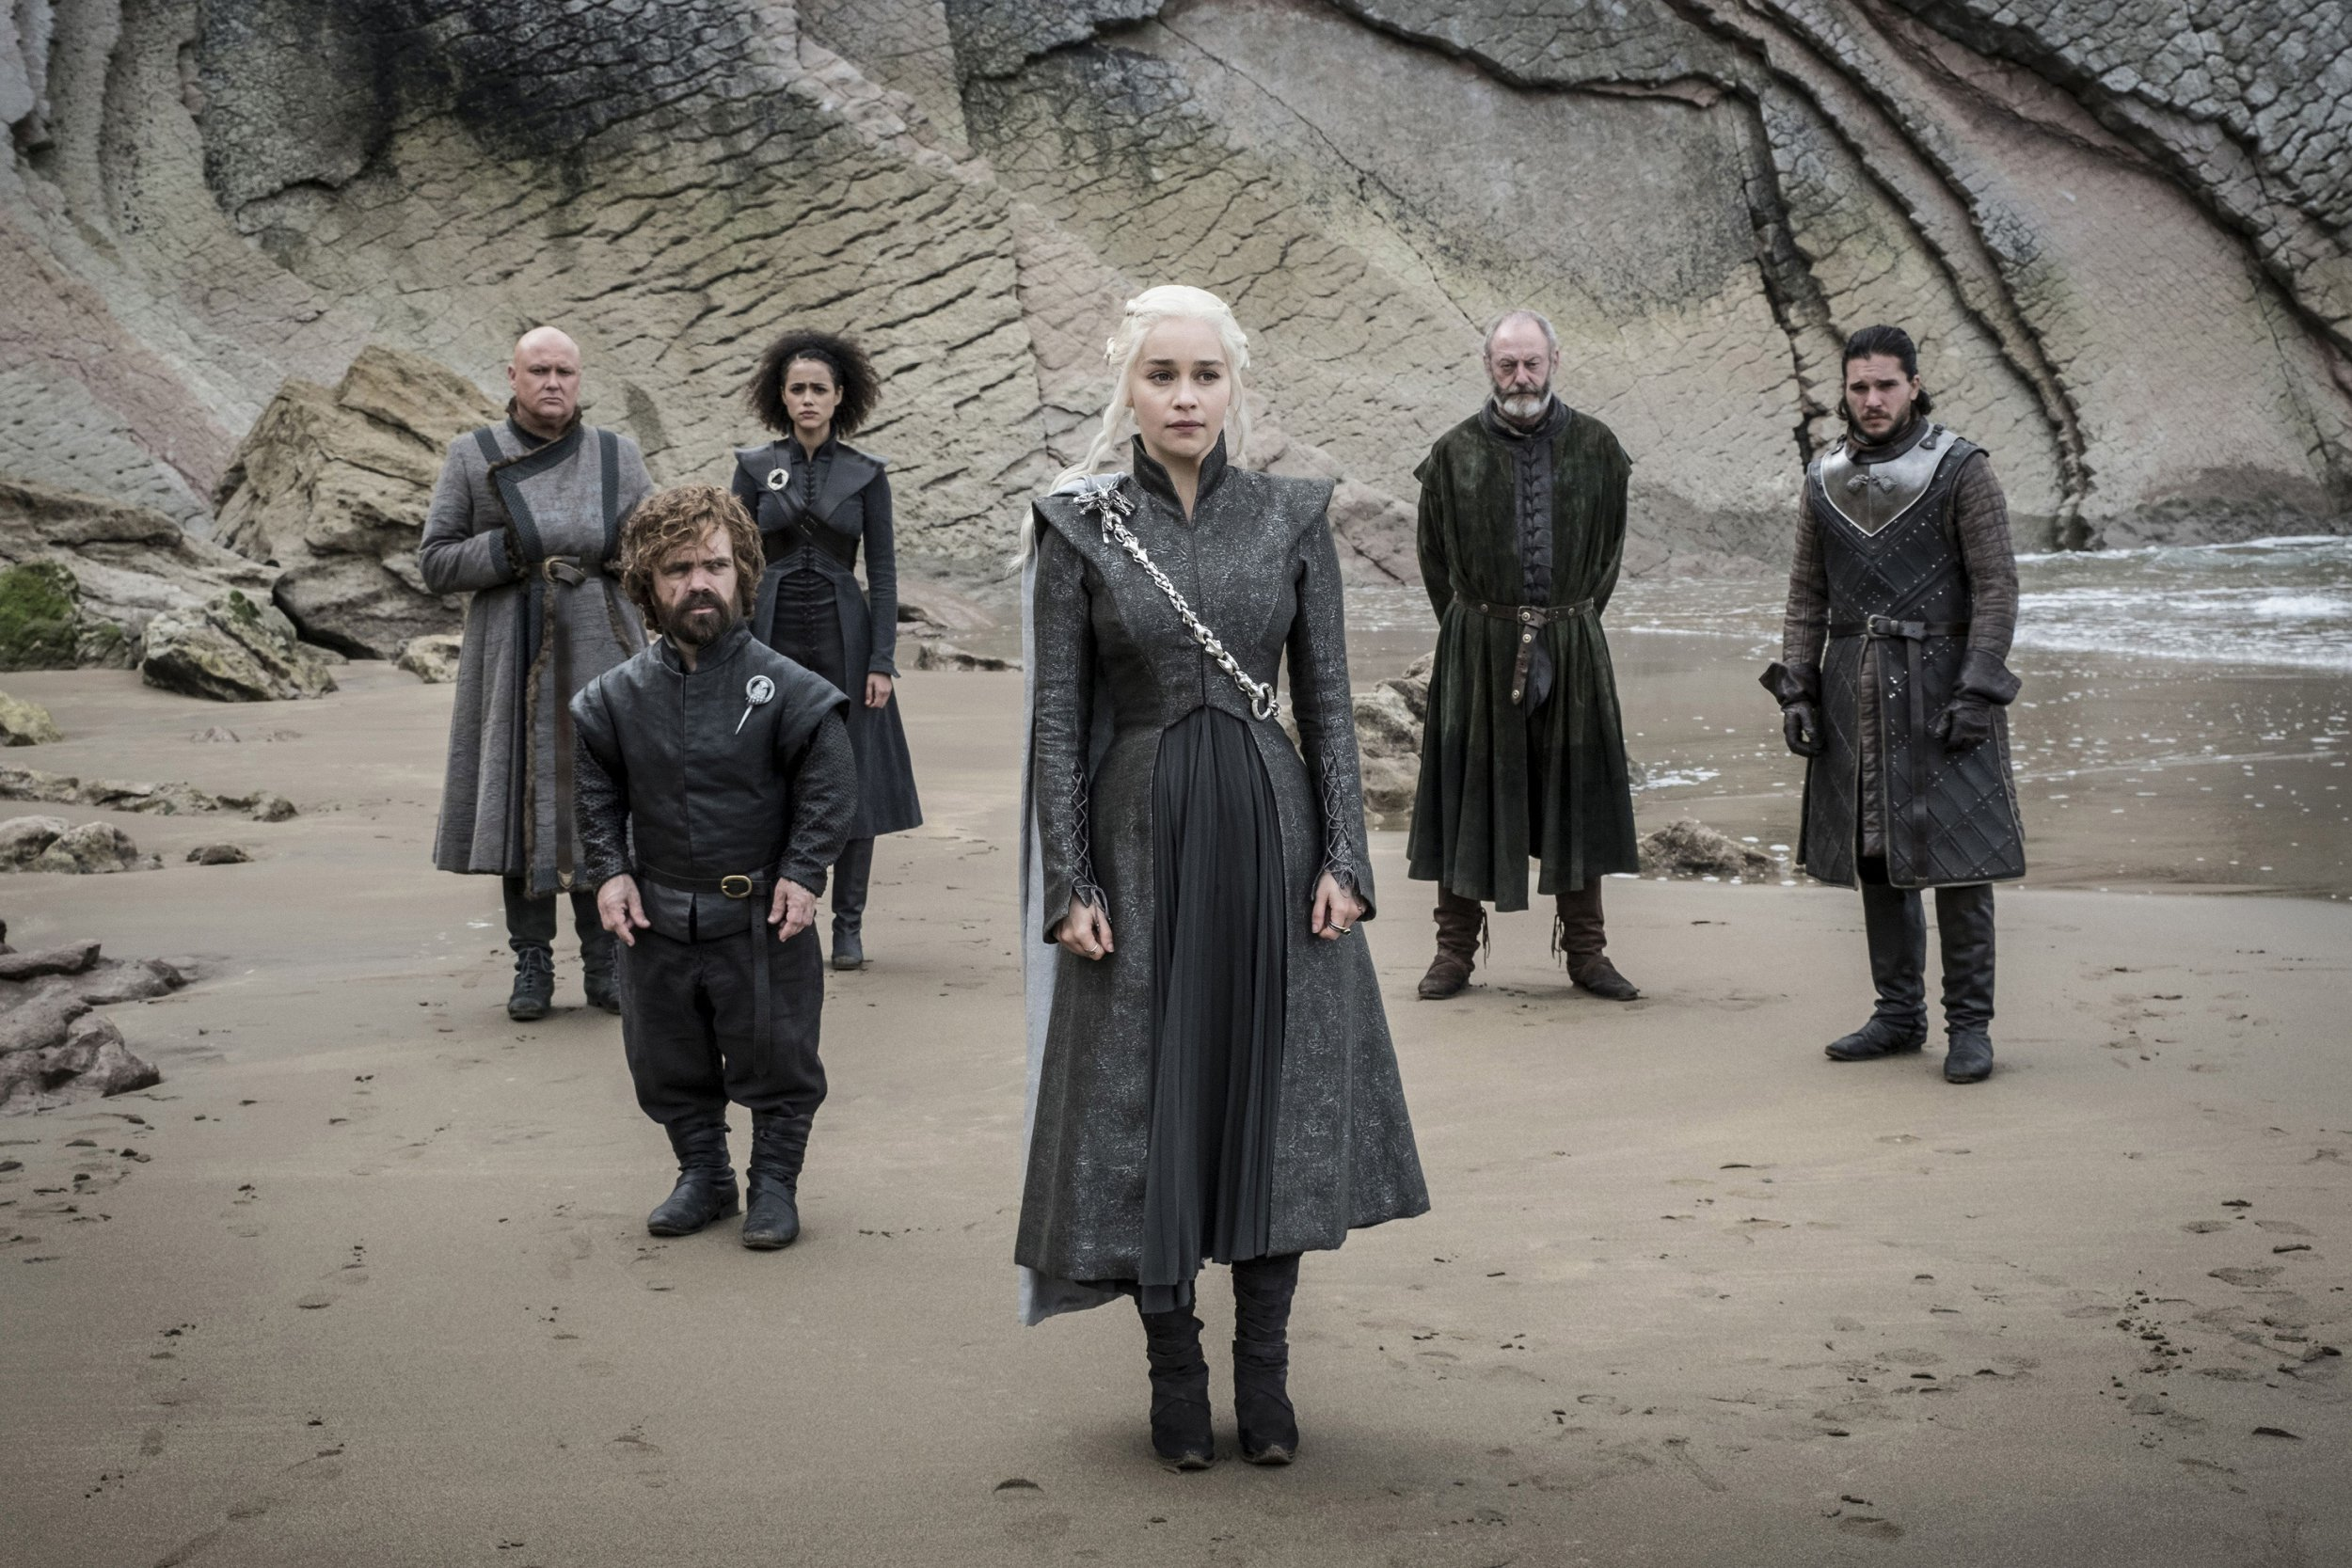 Game of Thrones fans have had just about enough waiting for season 8